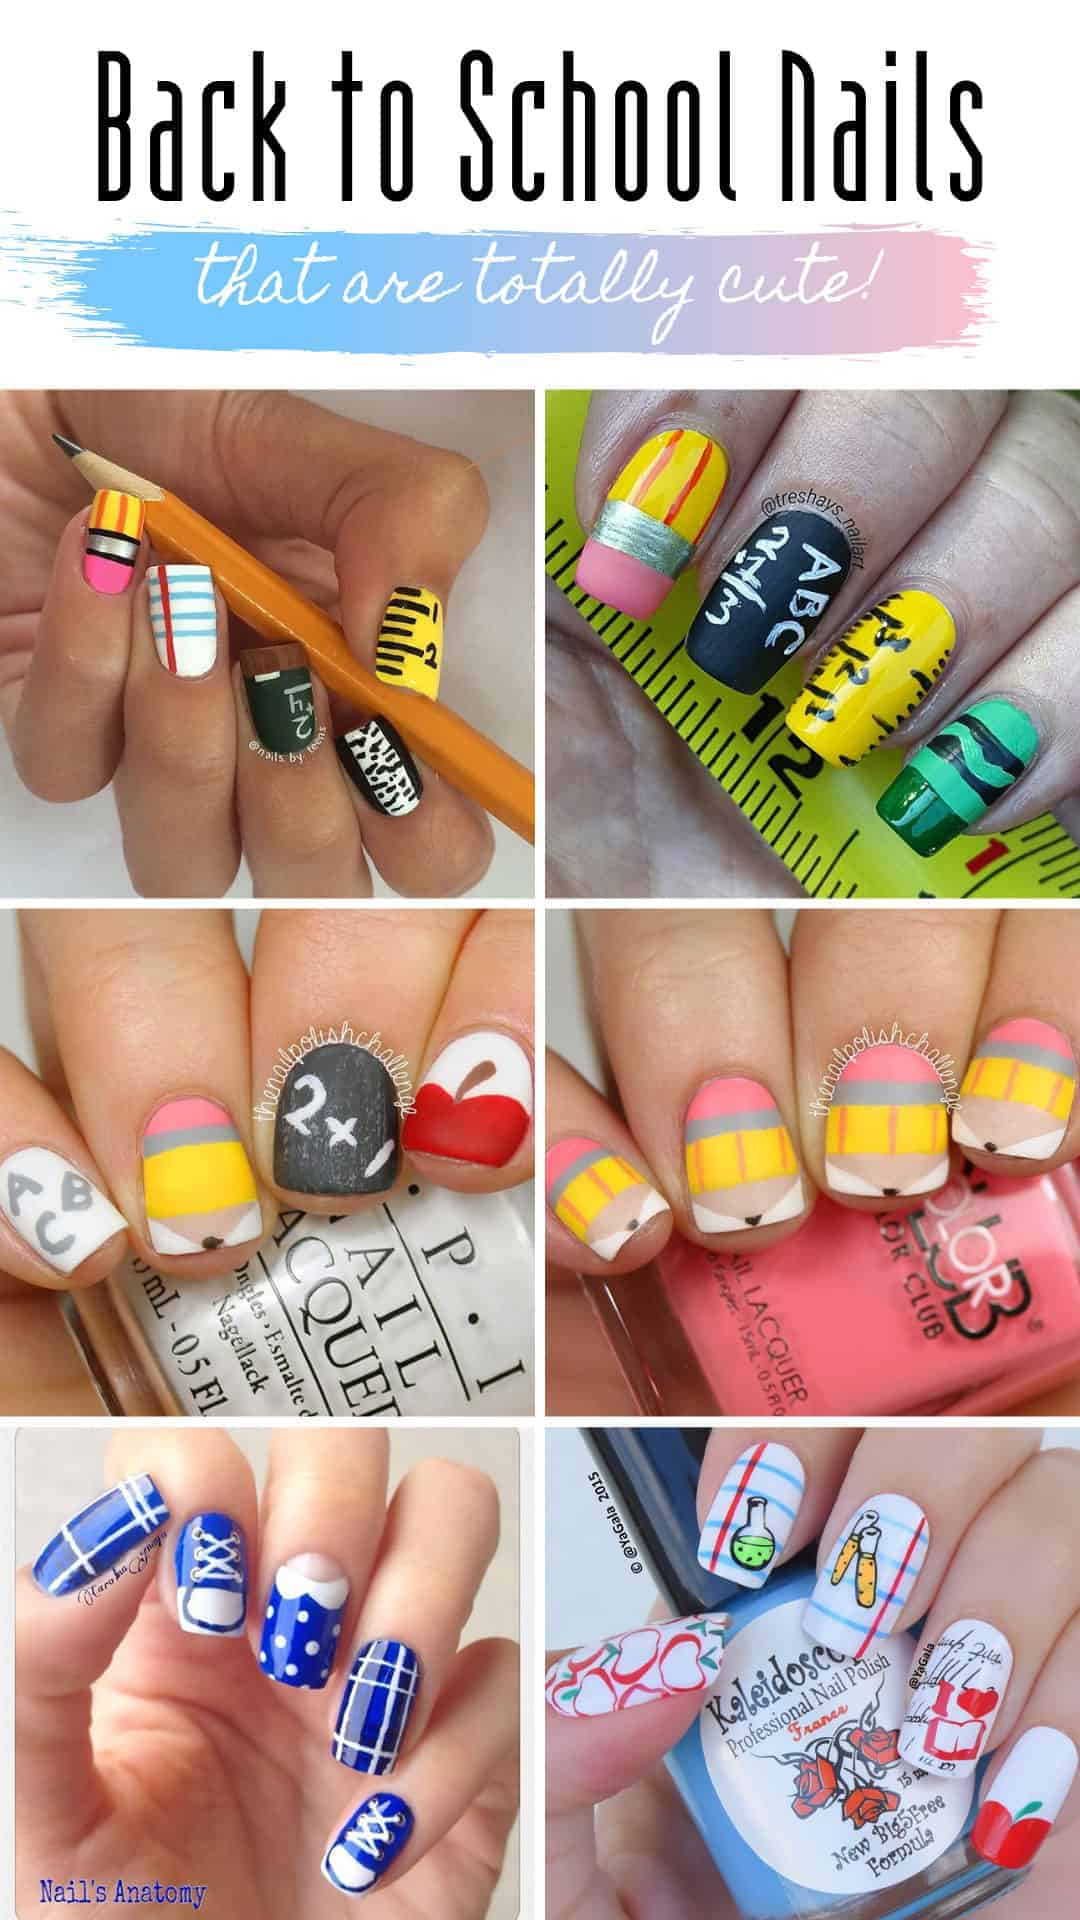 These back to school nails will make you want to hit the books! #backtoschool #nailart